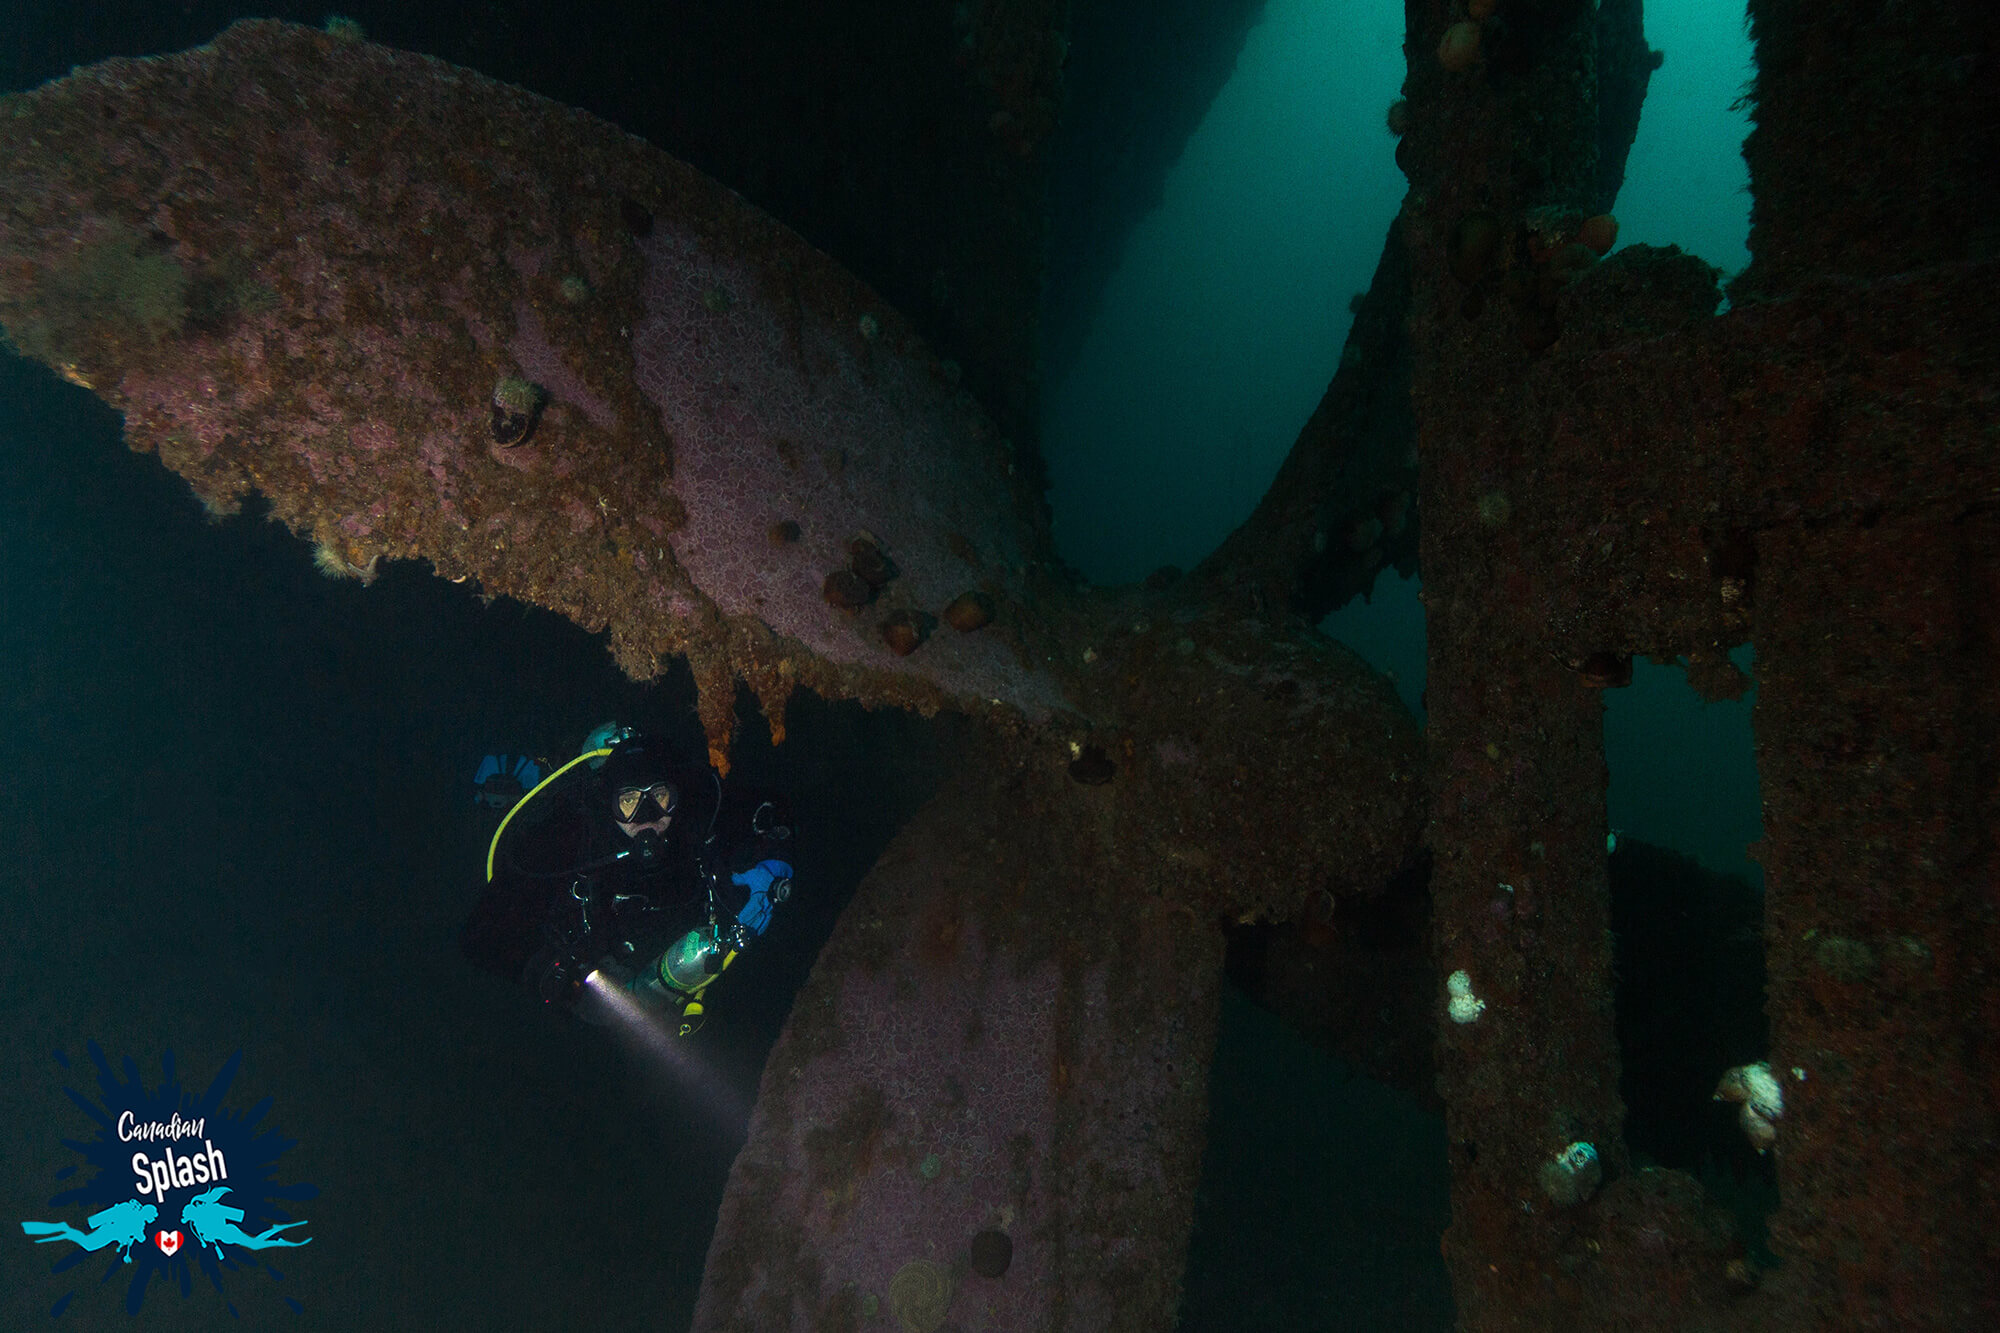 Joey The Scuba Diver Below The Large Anchor Of The PLM Ship, Bell Island Newfoundland, Canadian Scuba Diving